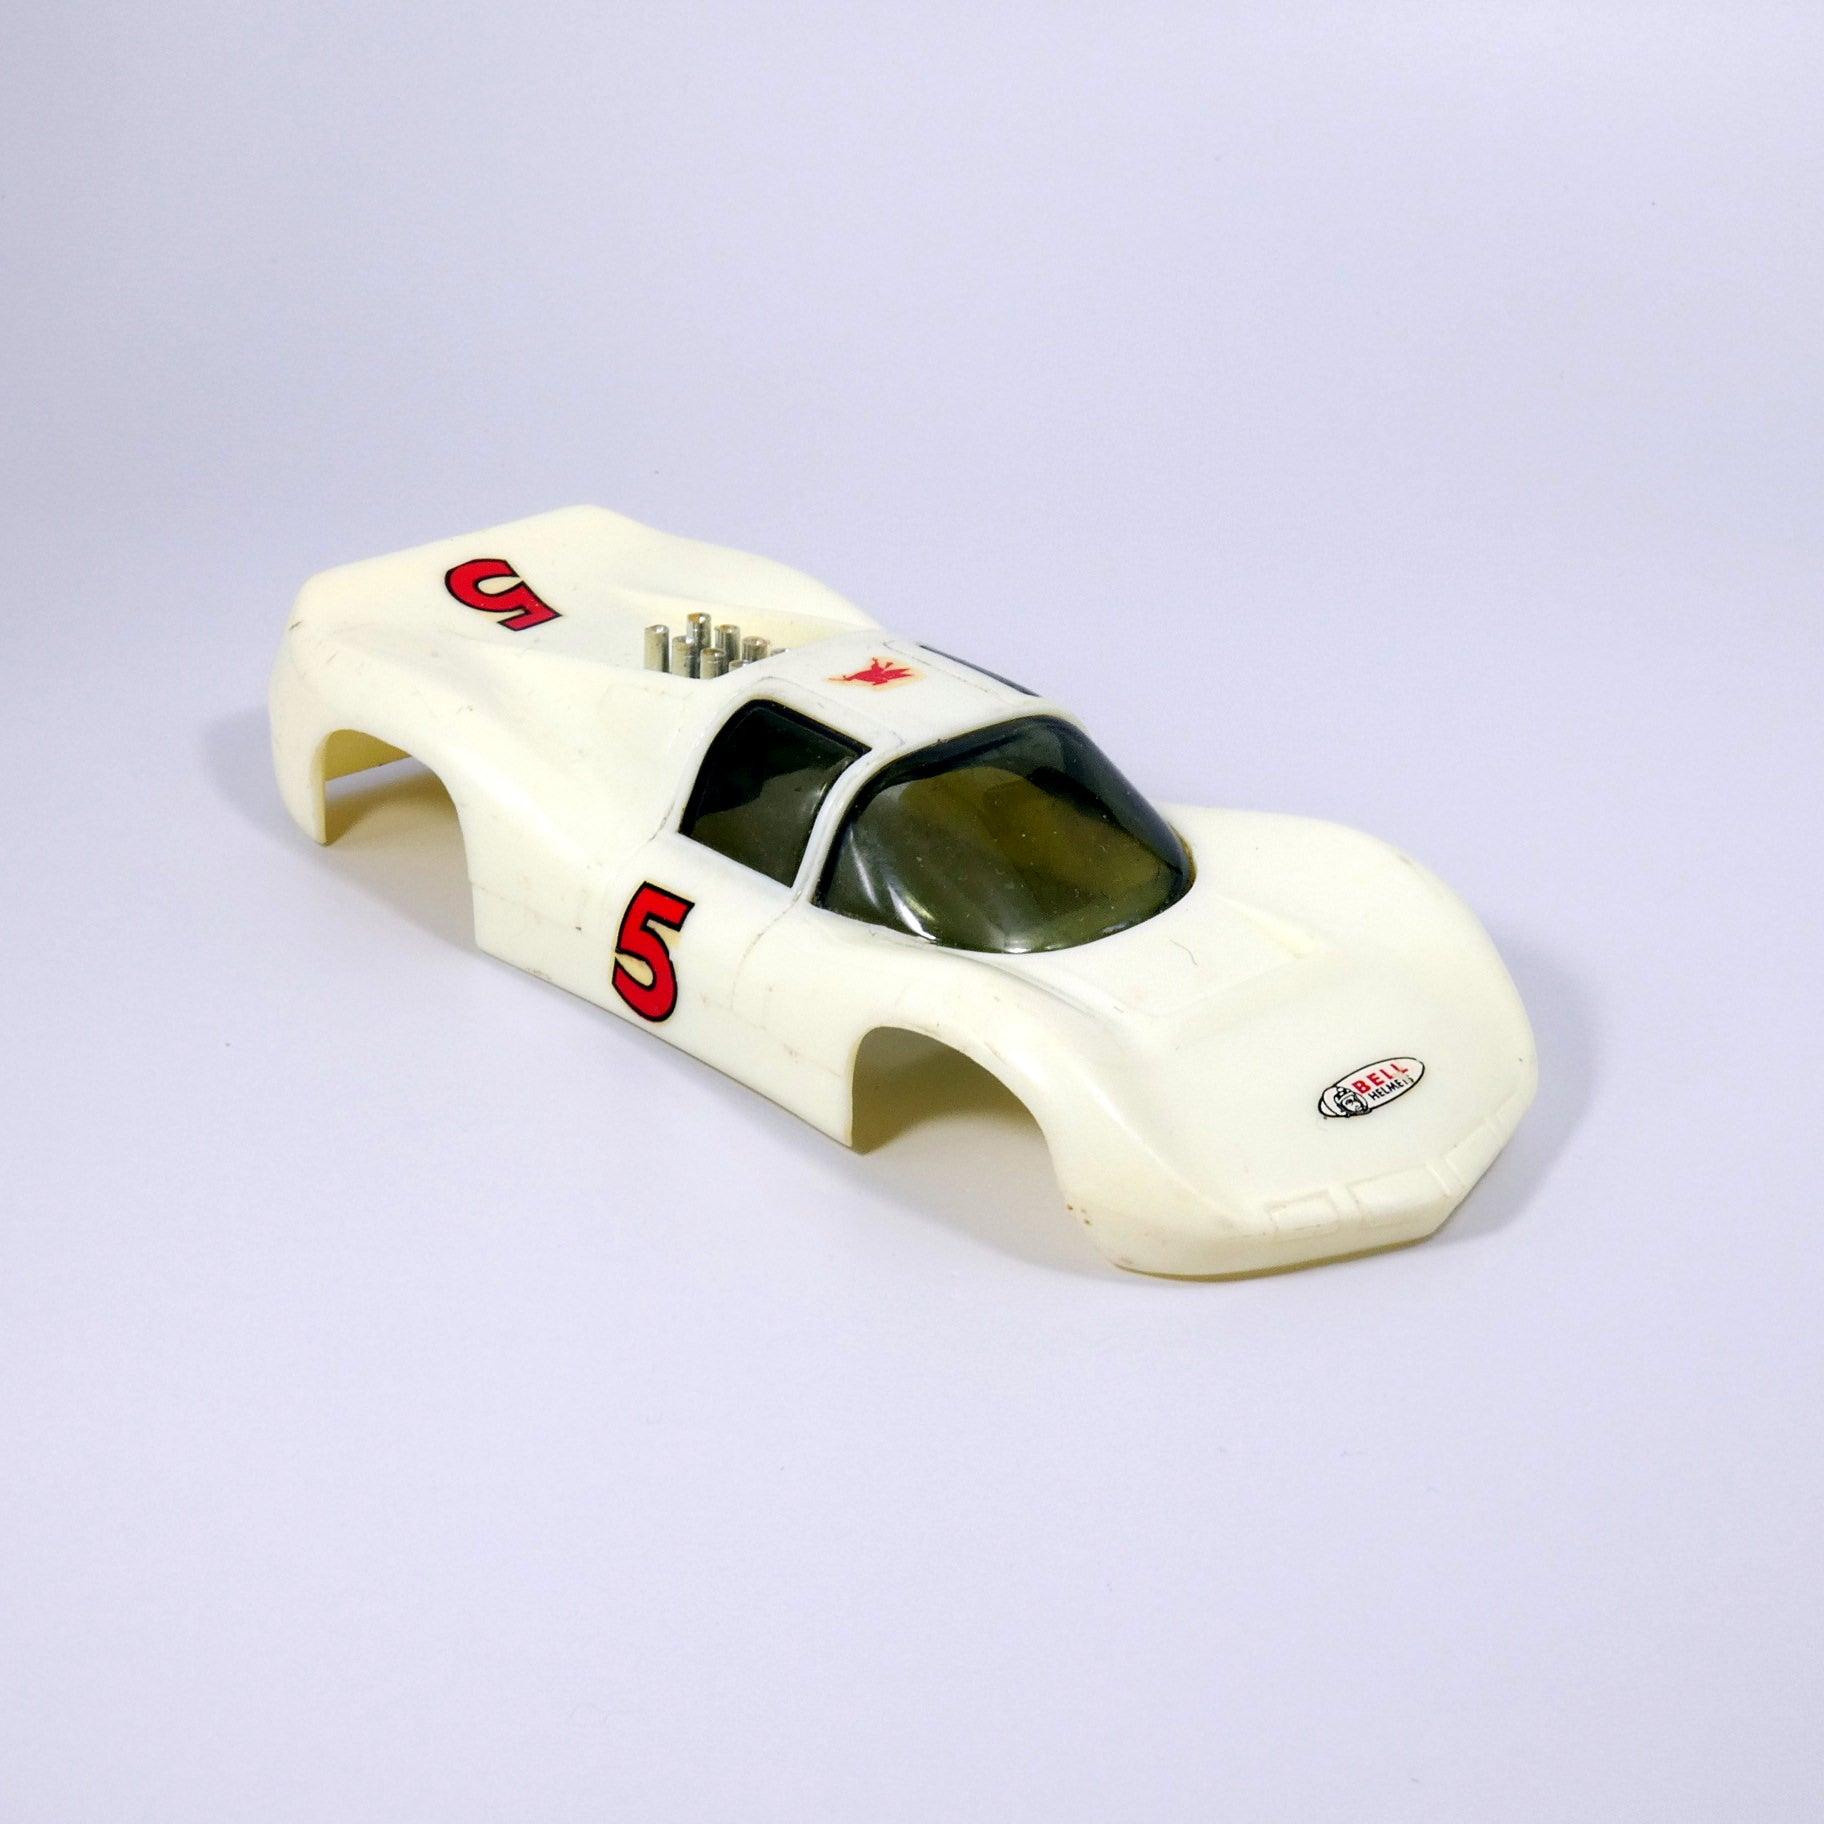 Vintage Slot Car - Eldon 1/32 1967 Chaparral 2D Daytona Coupe